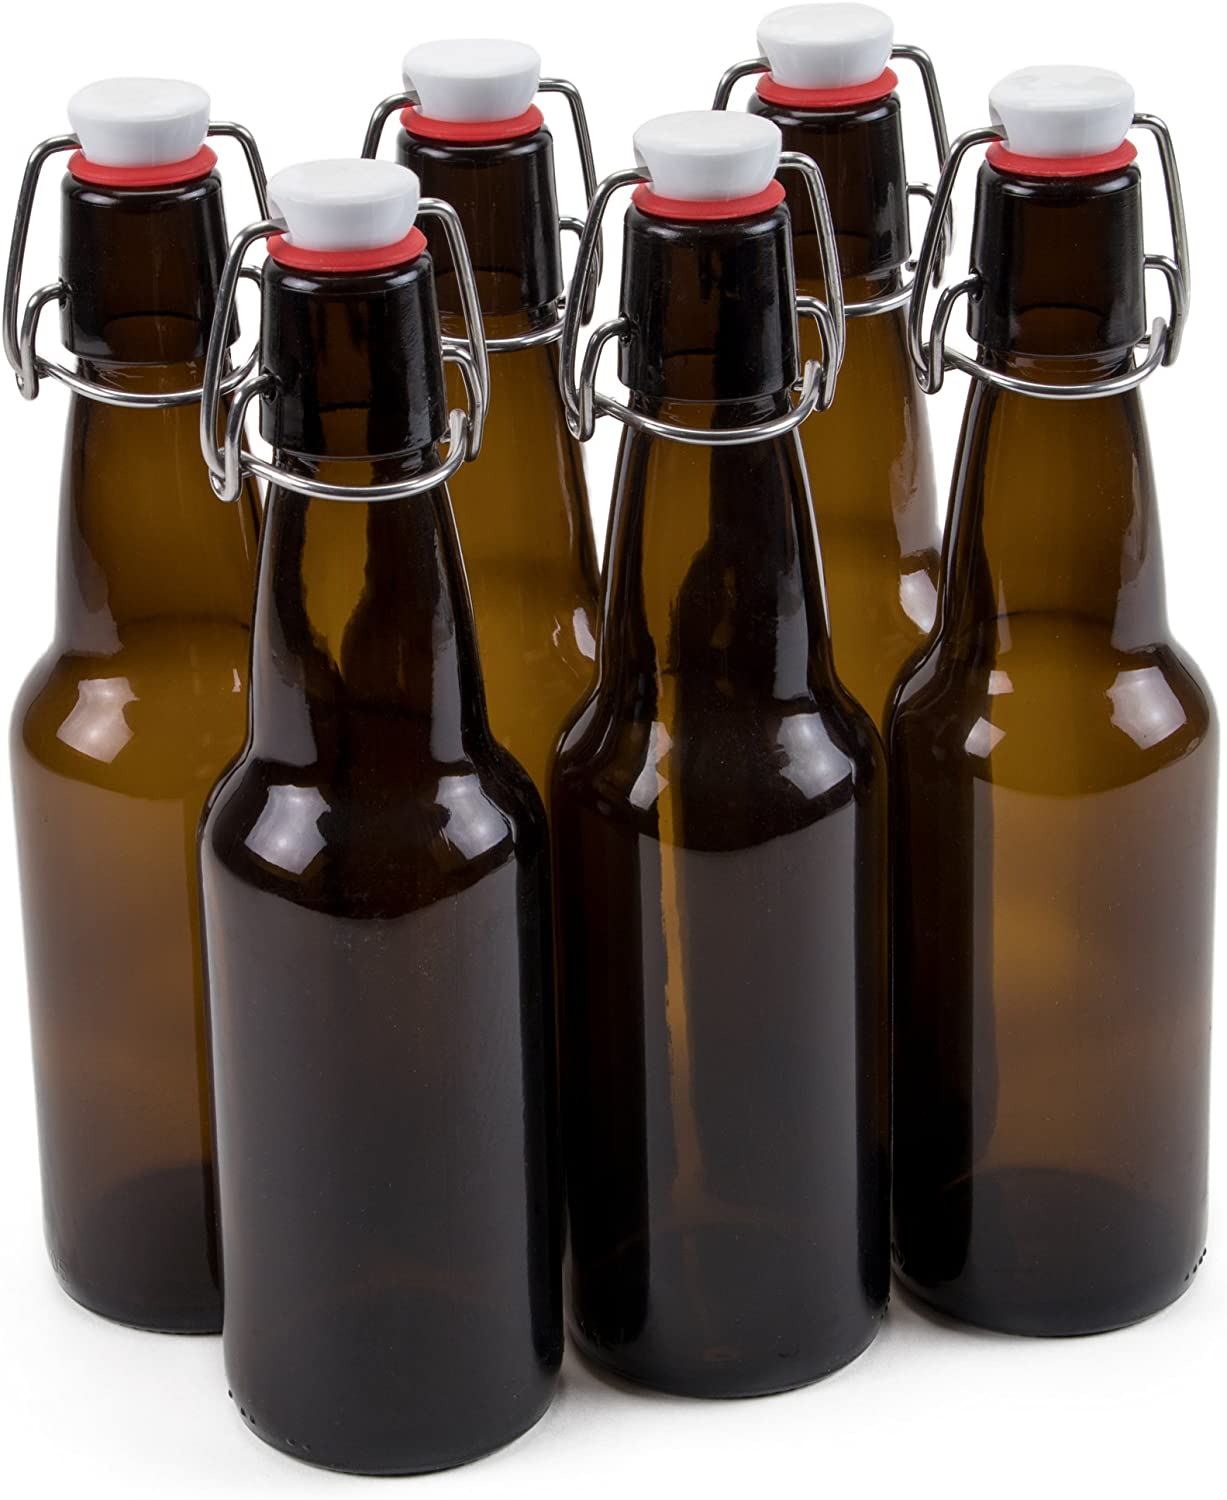 11 oz. Grolsch Glass Beer Bottle – Airtight Swing Top Seal Storage for Home Brewing of Alcohol, Kombucha Tea, Homemade Soda by Cocktailor (6-pack)